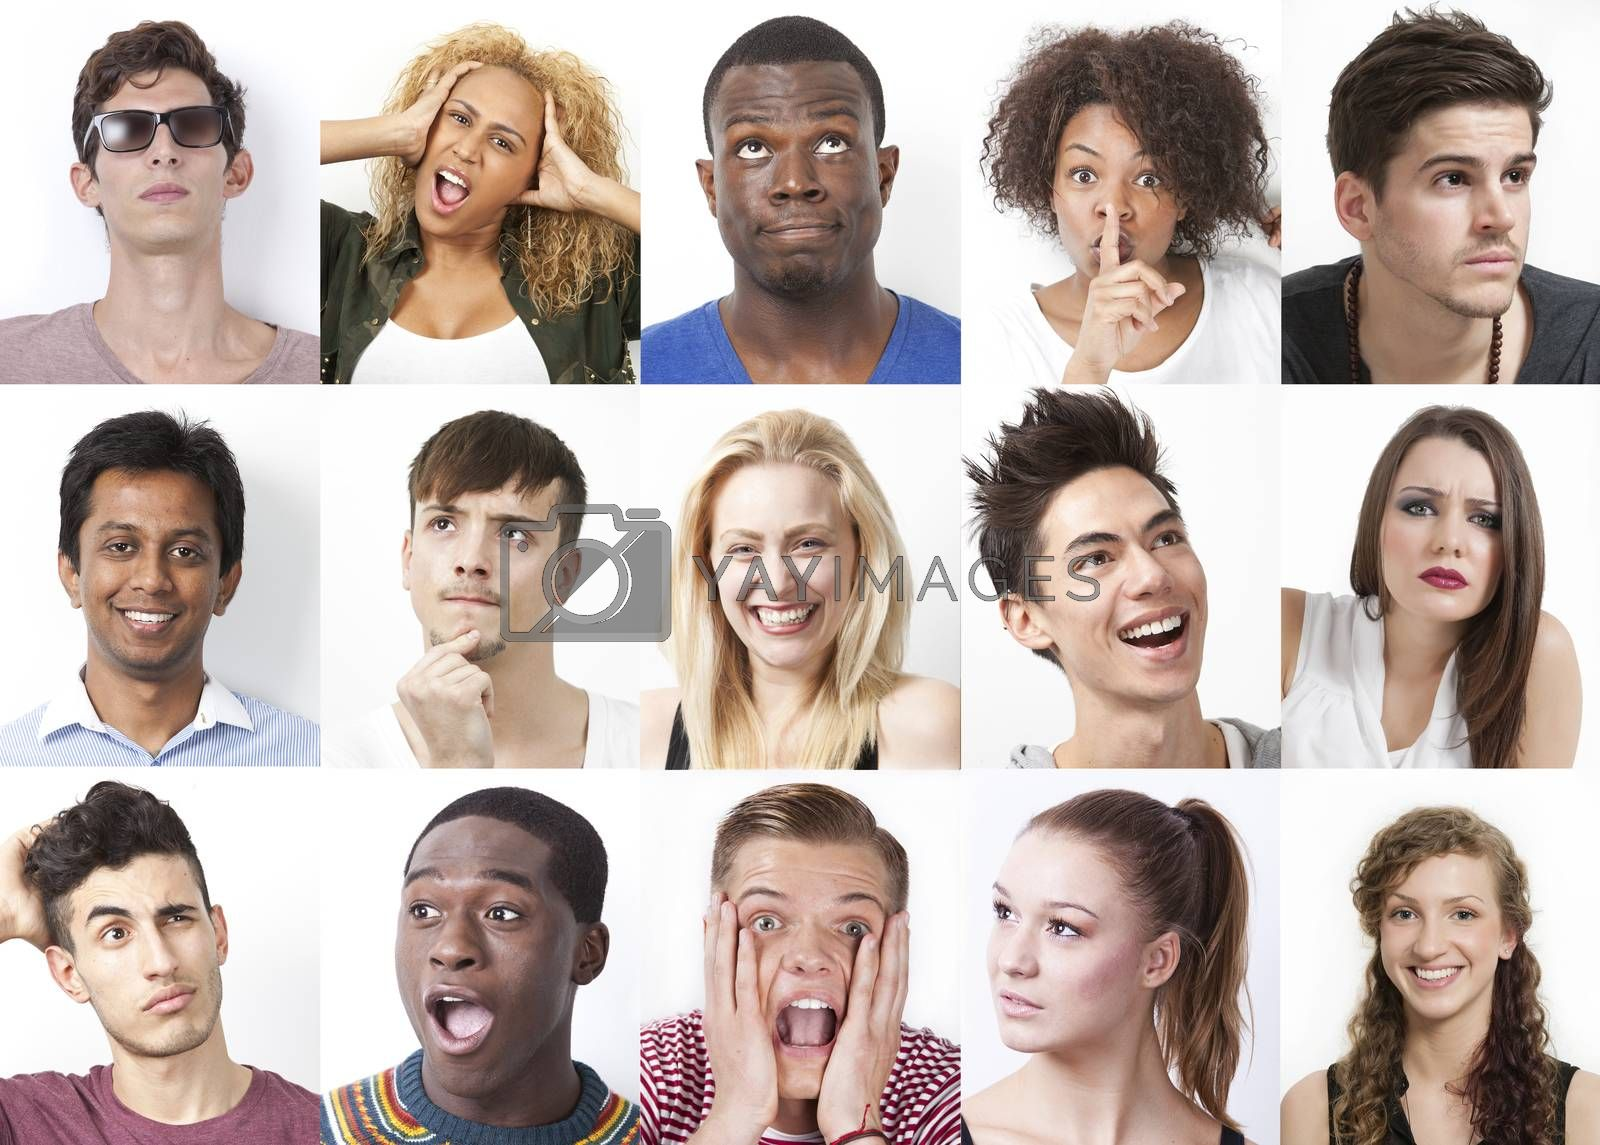 Collage of multi-ethnic people with various facial expressions